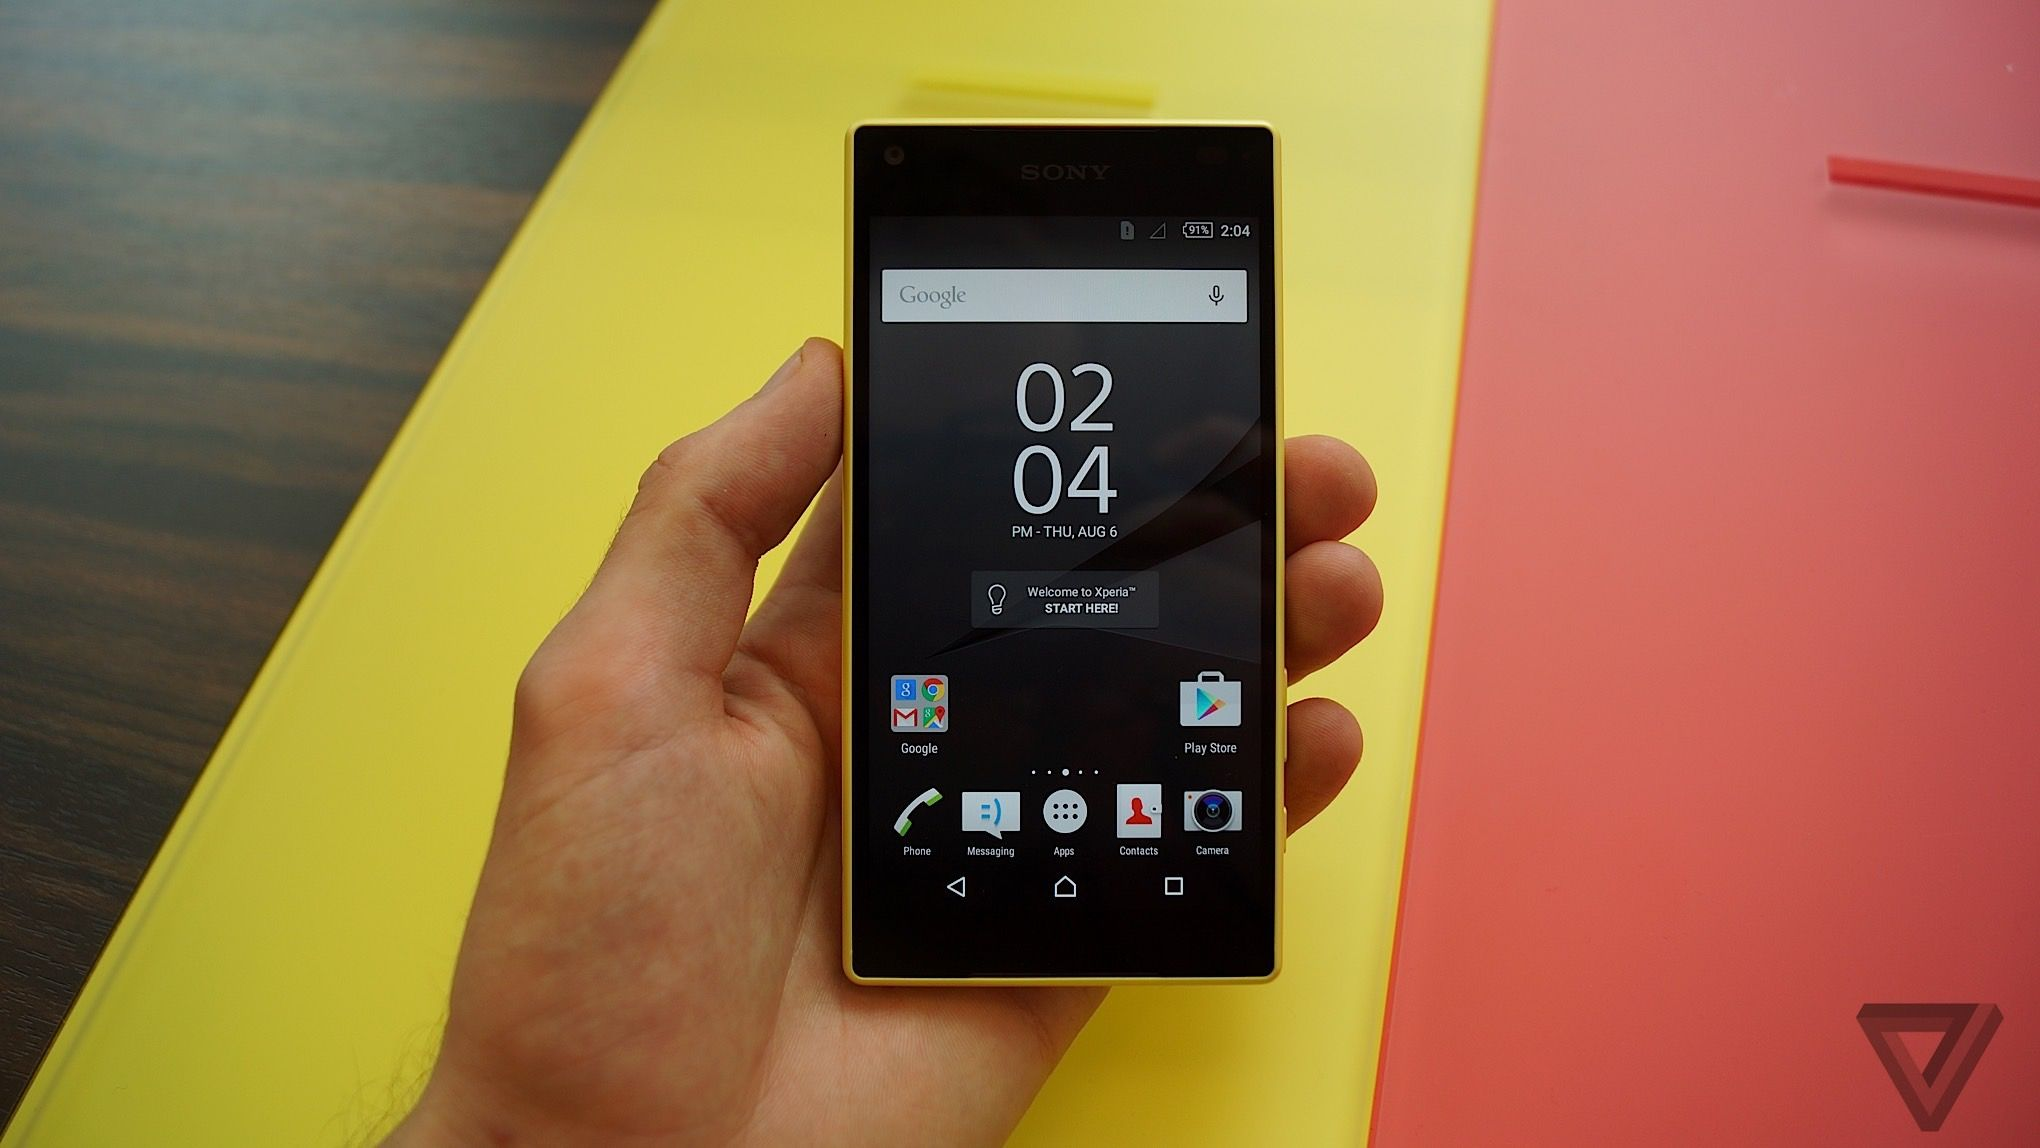 How to root sony xperia z5 compact guide reviews news tips sonyxperiaz5compact70 ccuart Gallery